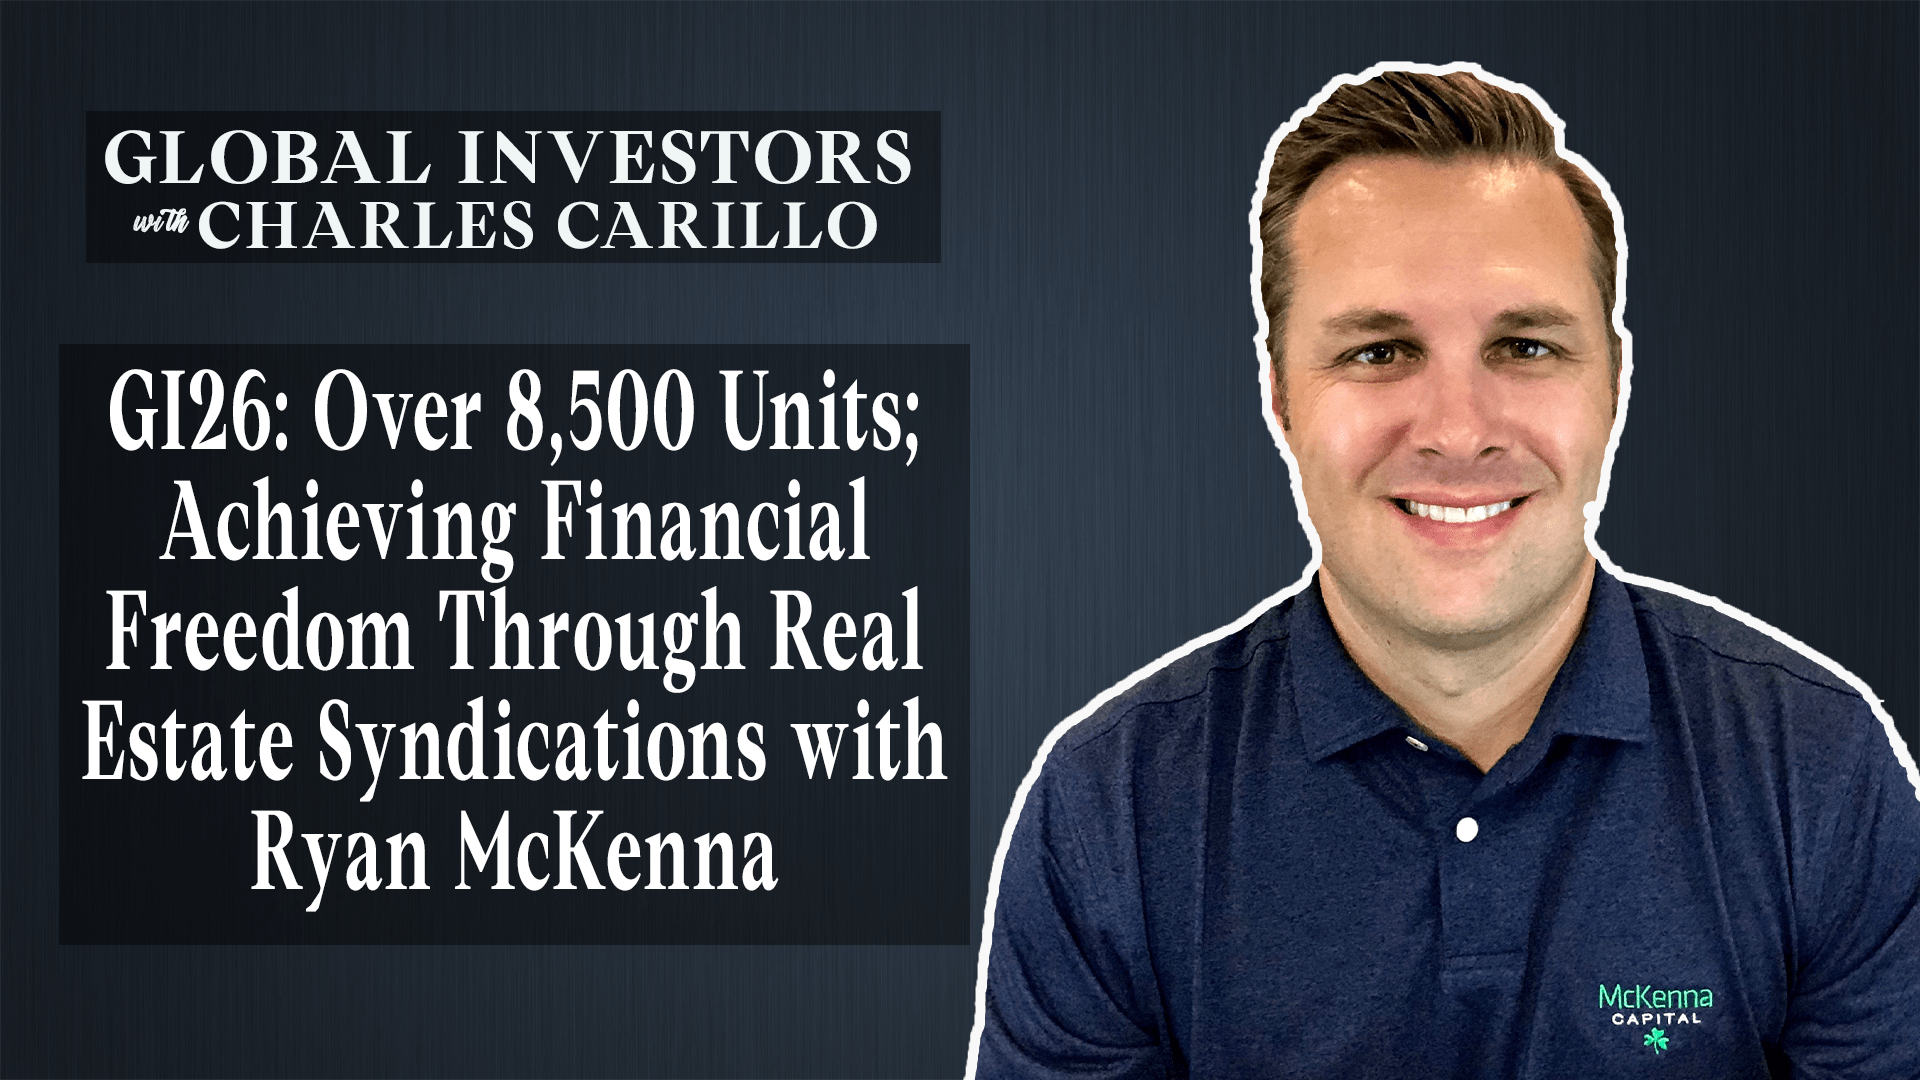 GI26: Over 8,500 Units; Achieving Financial Freedom Through Real Estate Syndications with Ryan McKenna